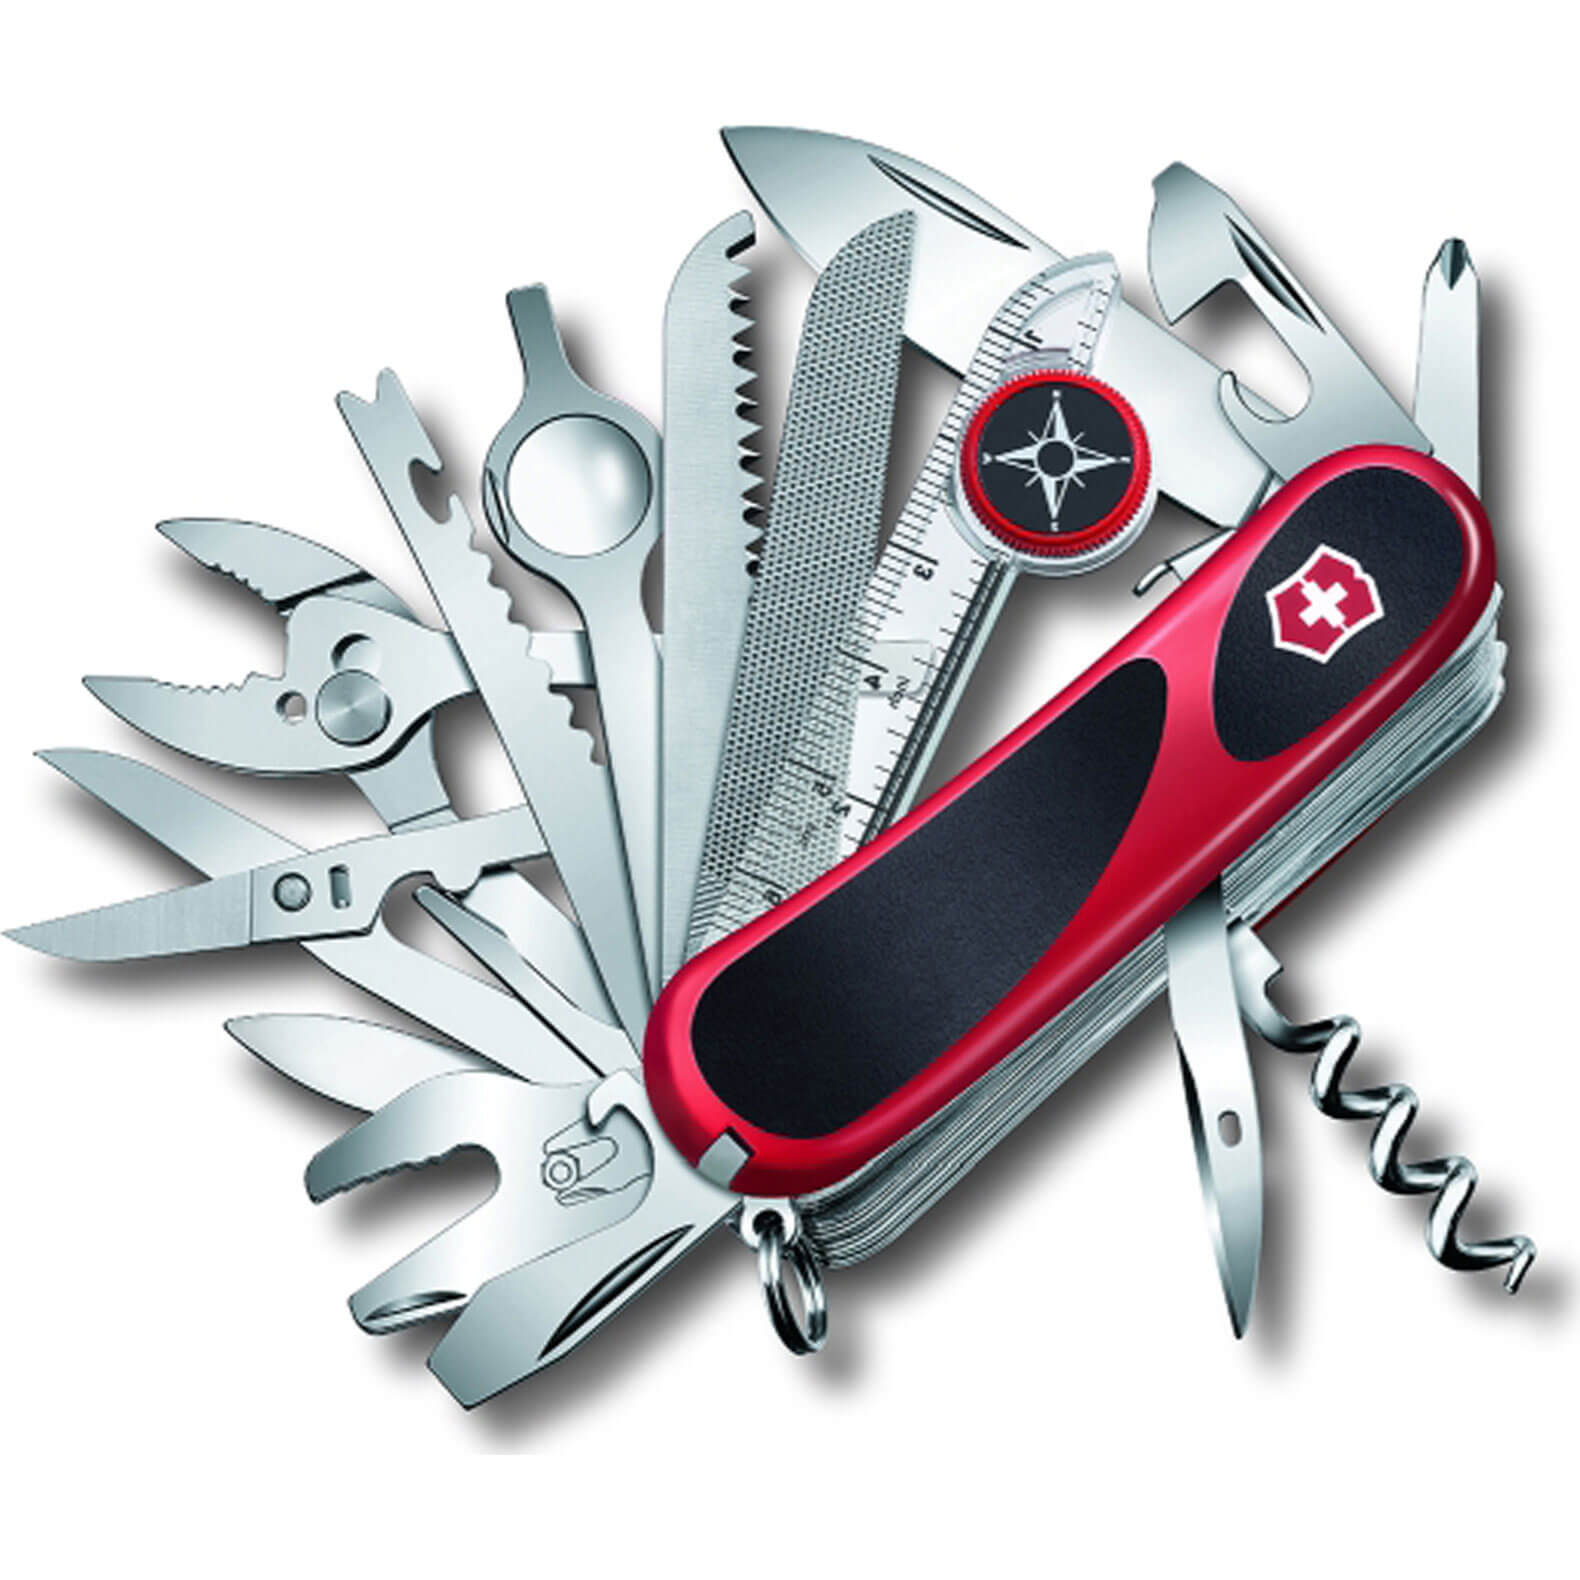 Image of Victorinox Evolution S54 Swiss Army Knife Red / Black